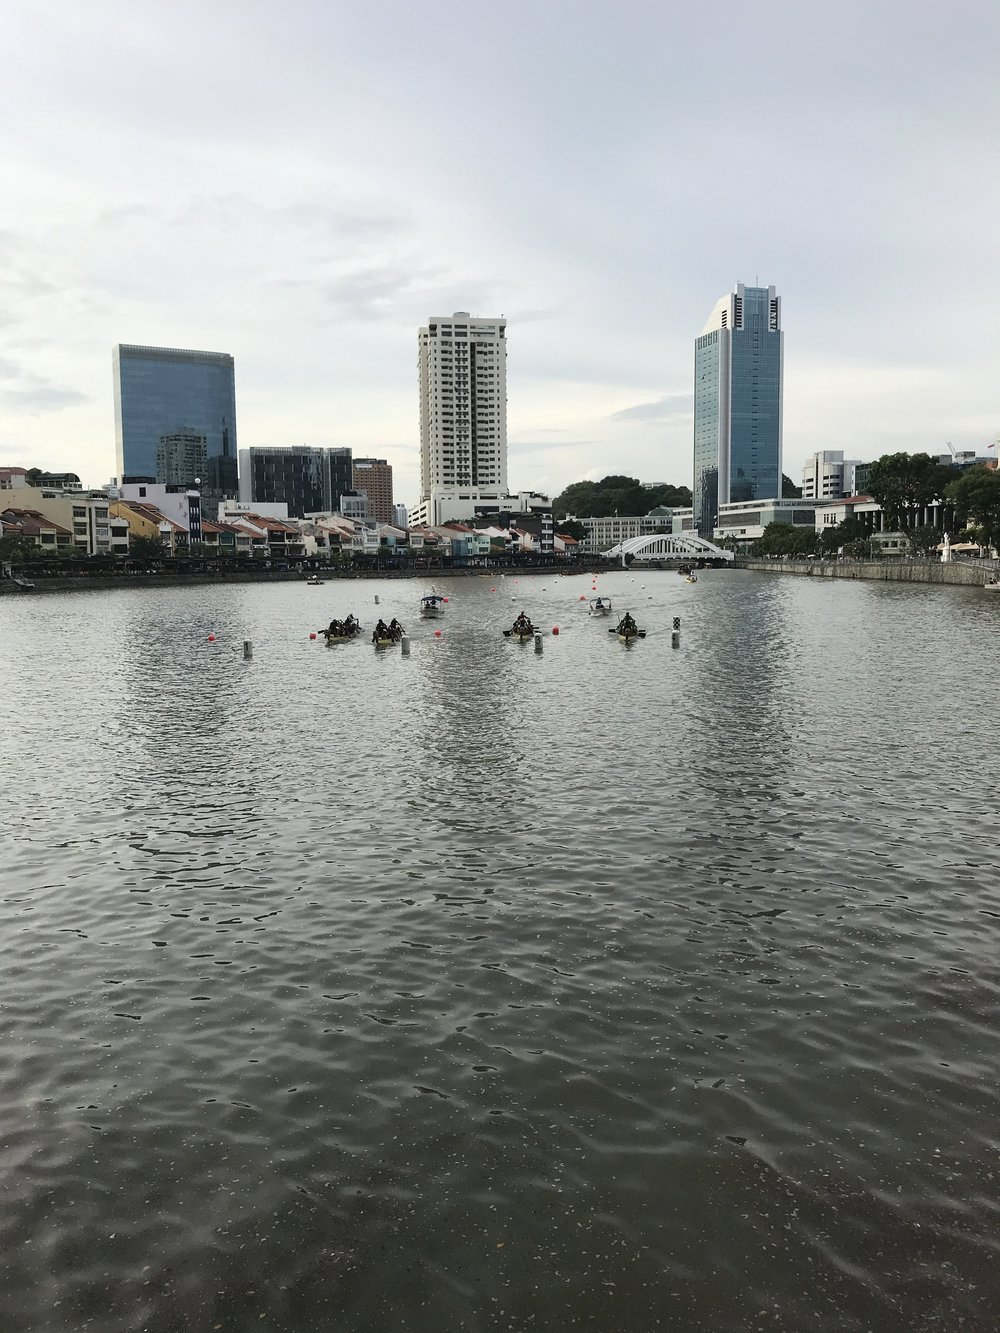 Alternative entertainment - dragon boat racing right outside the venue